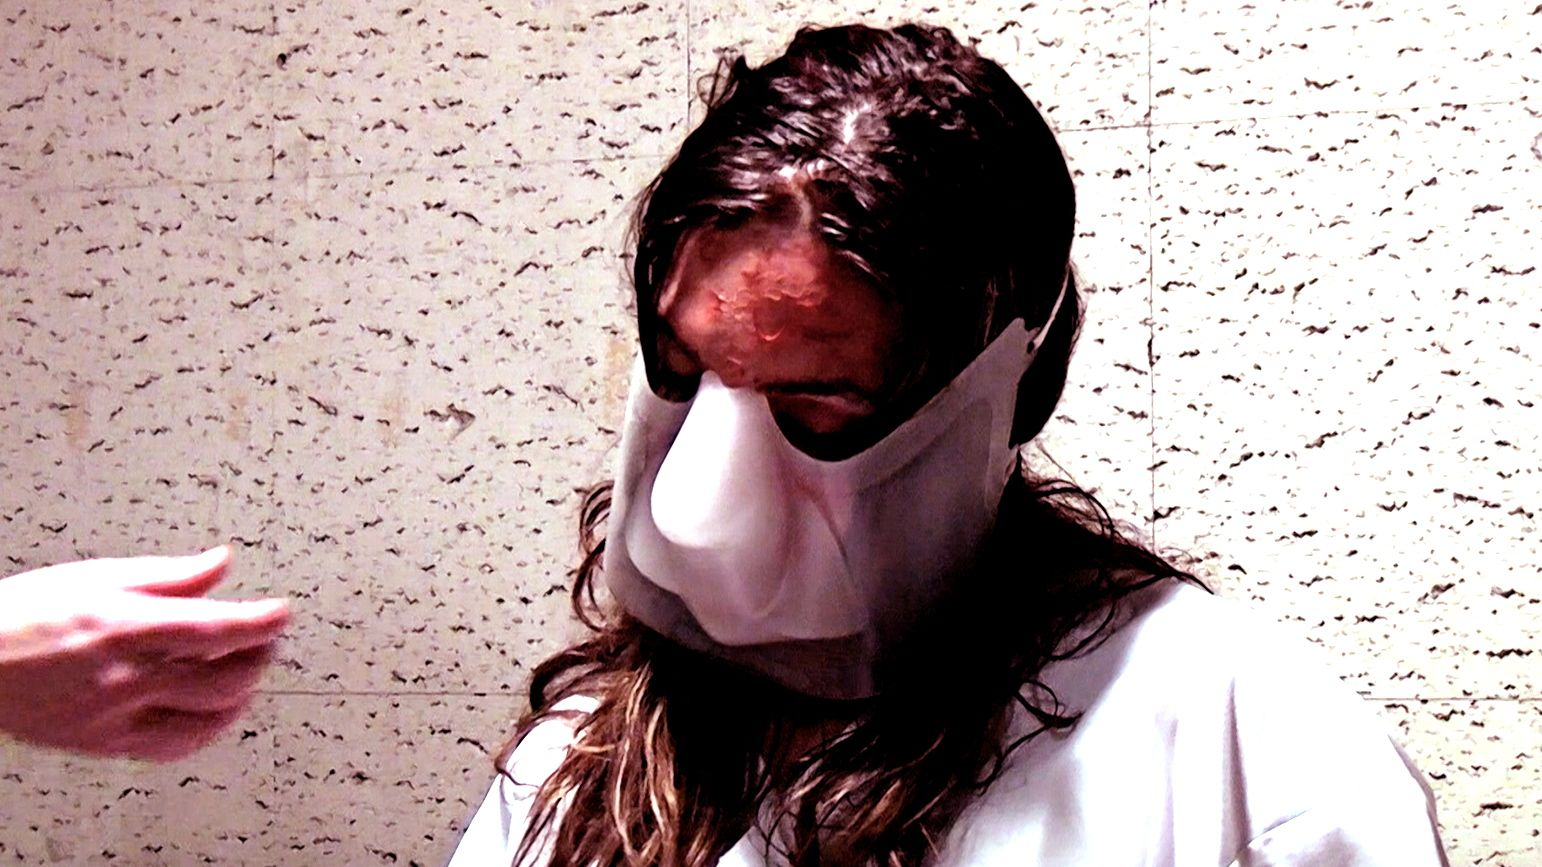 Biting the hand that feeds you - Carly Oates as Regina Stevens-virtualdr.ir-775571